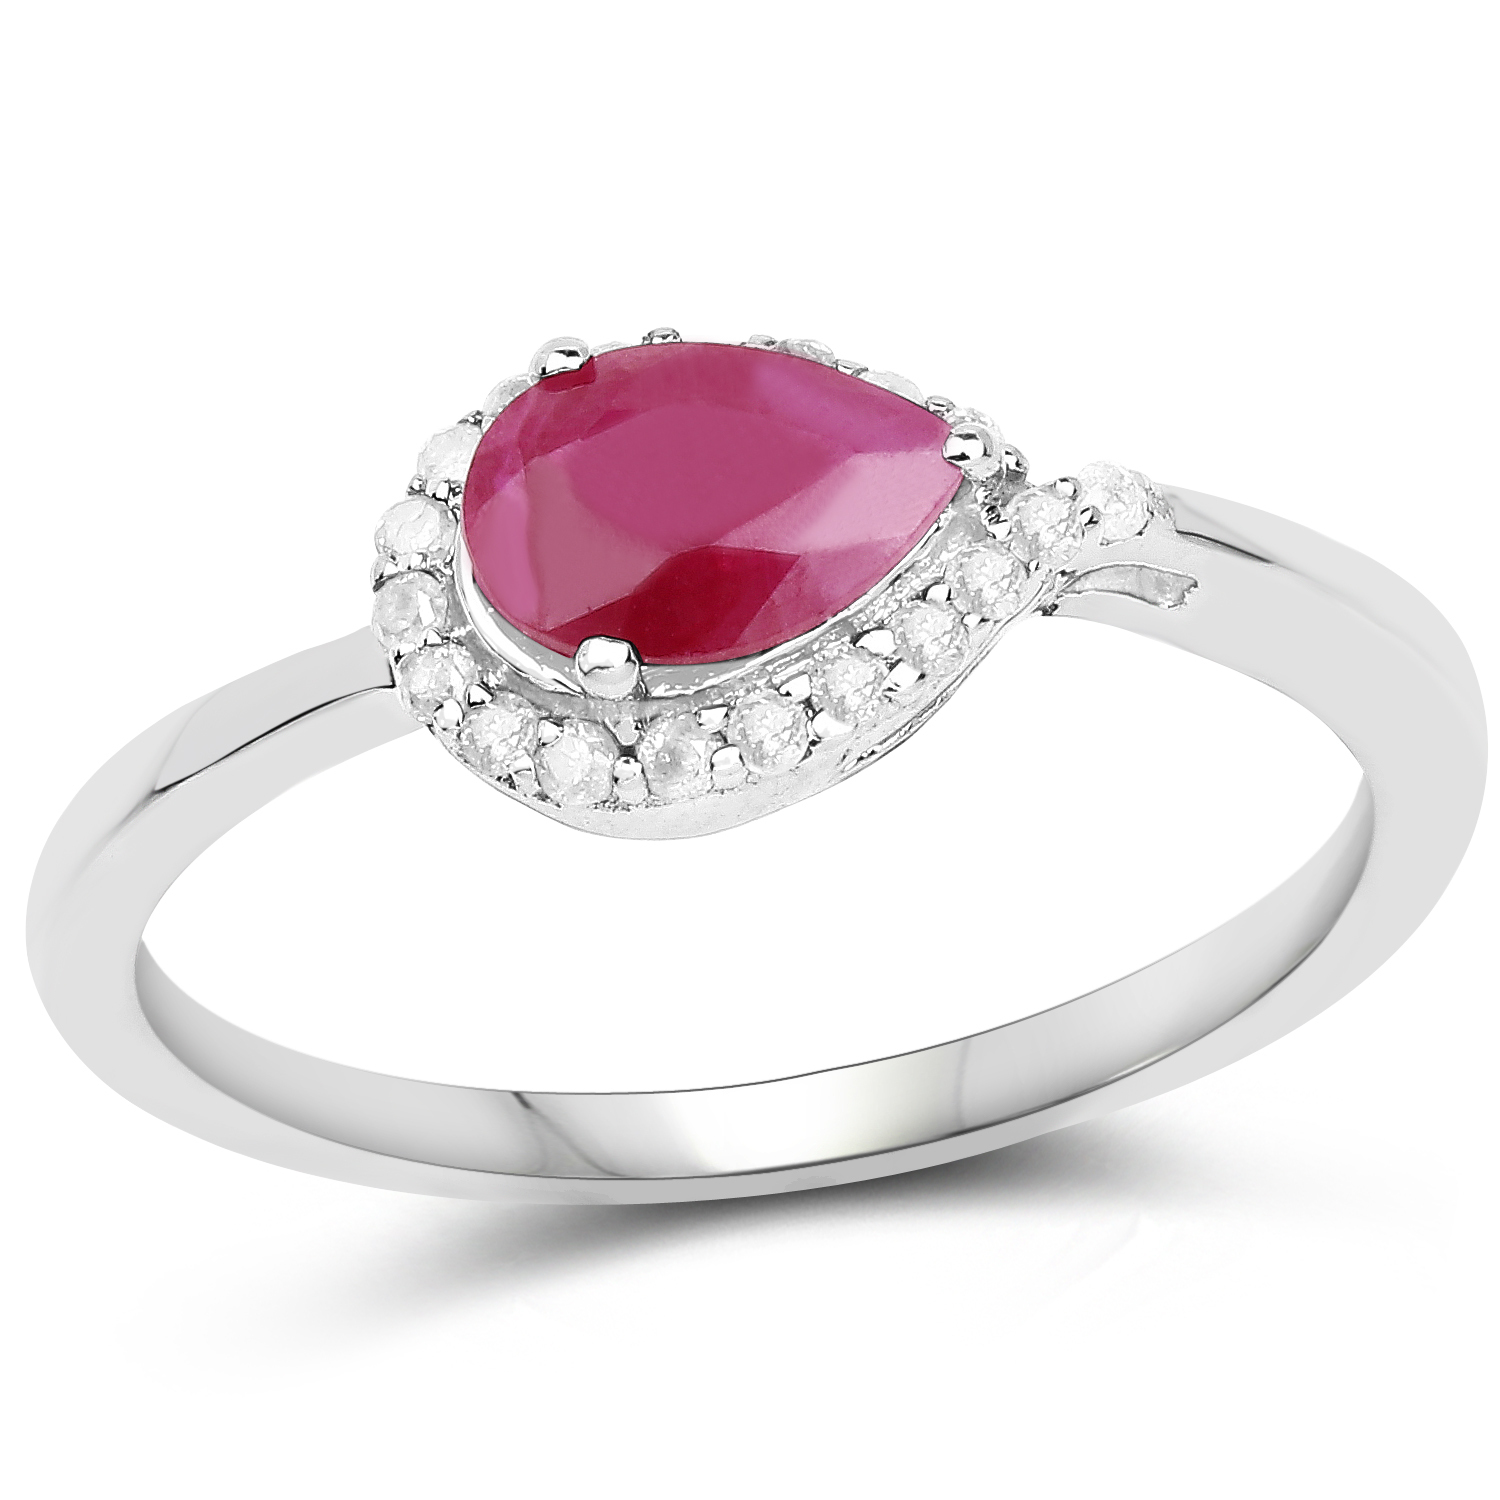 Genuine Pears Ruby and Diamond Ring in 10k White Gold - Size 7.00